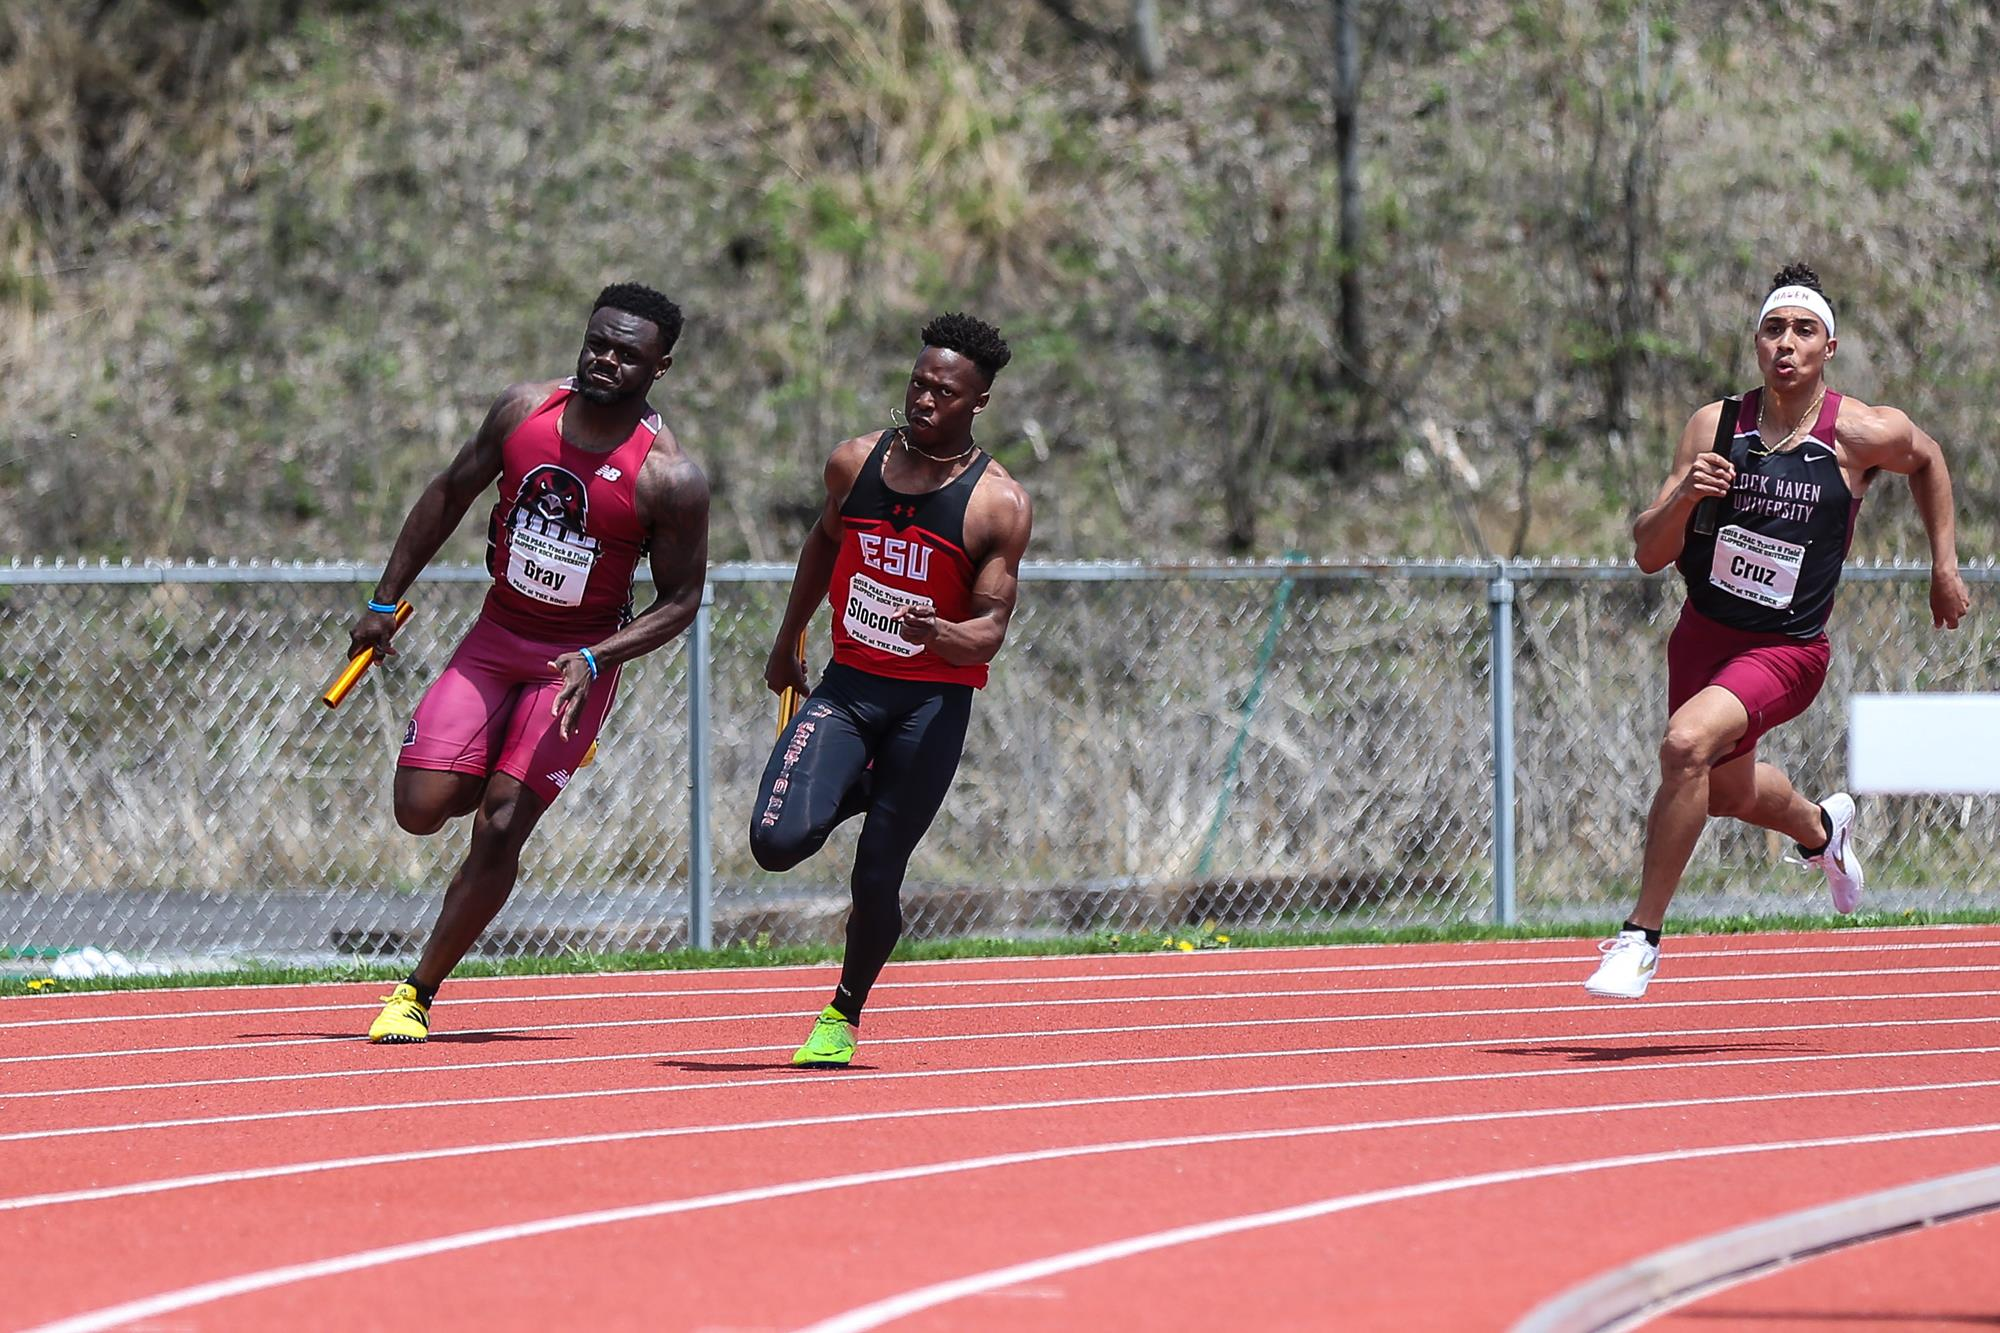 IUP track and field teams dominate at Susquehanna University Challenge